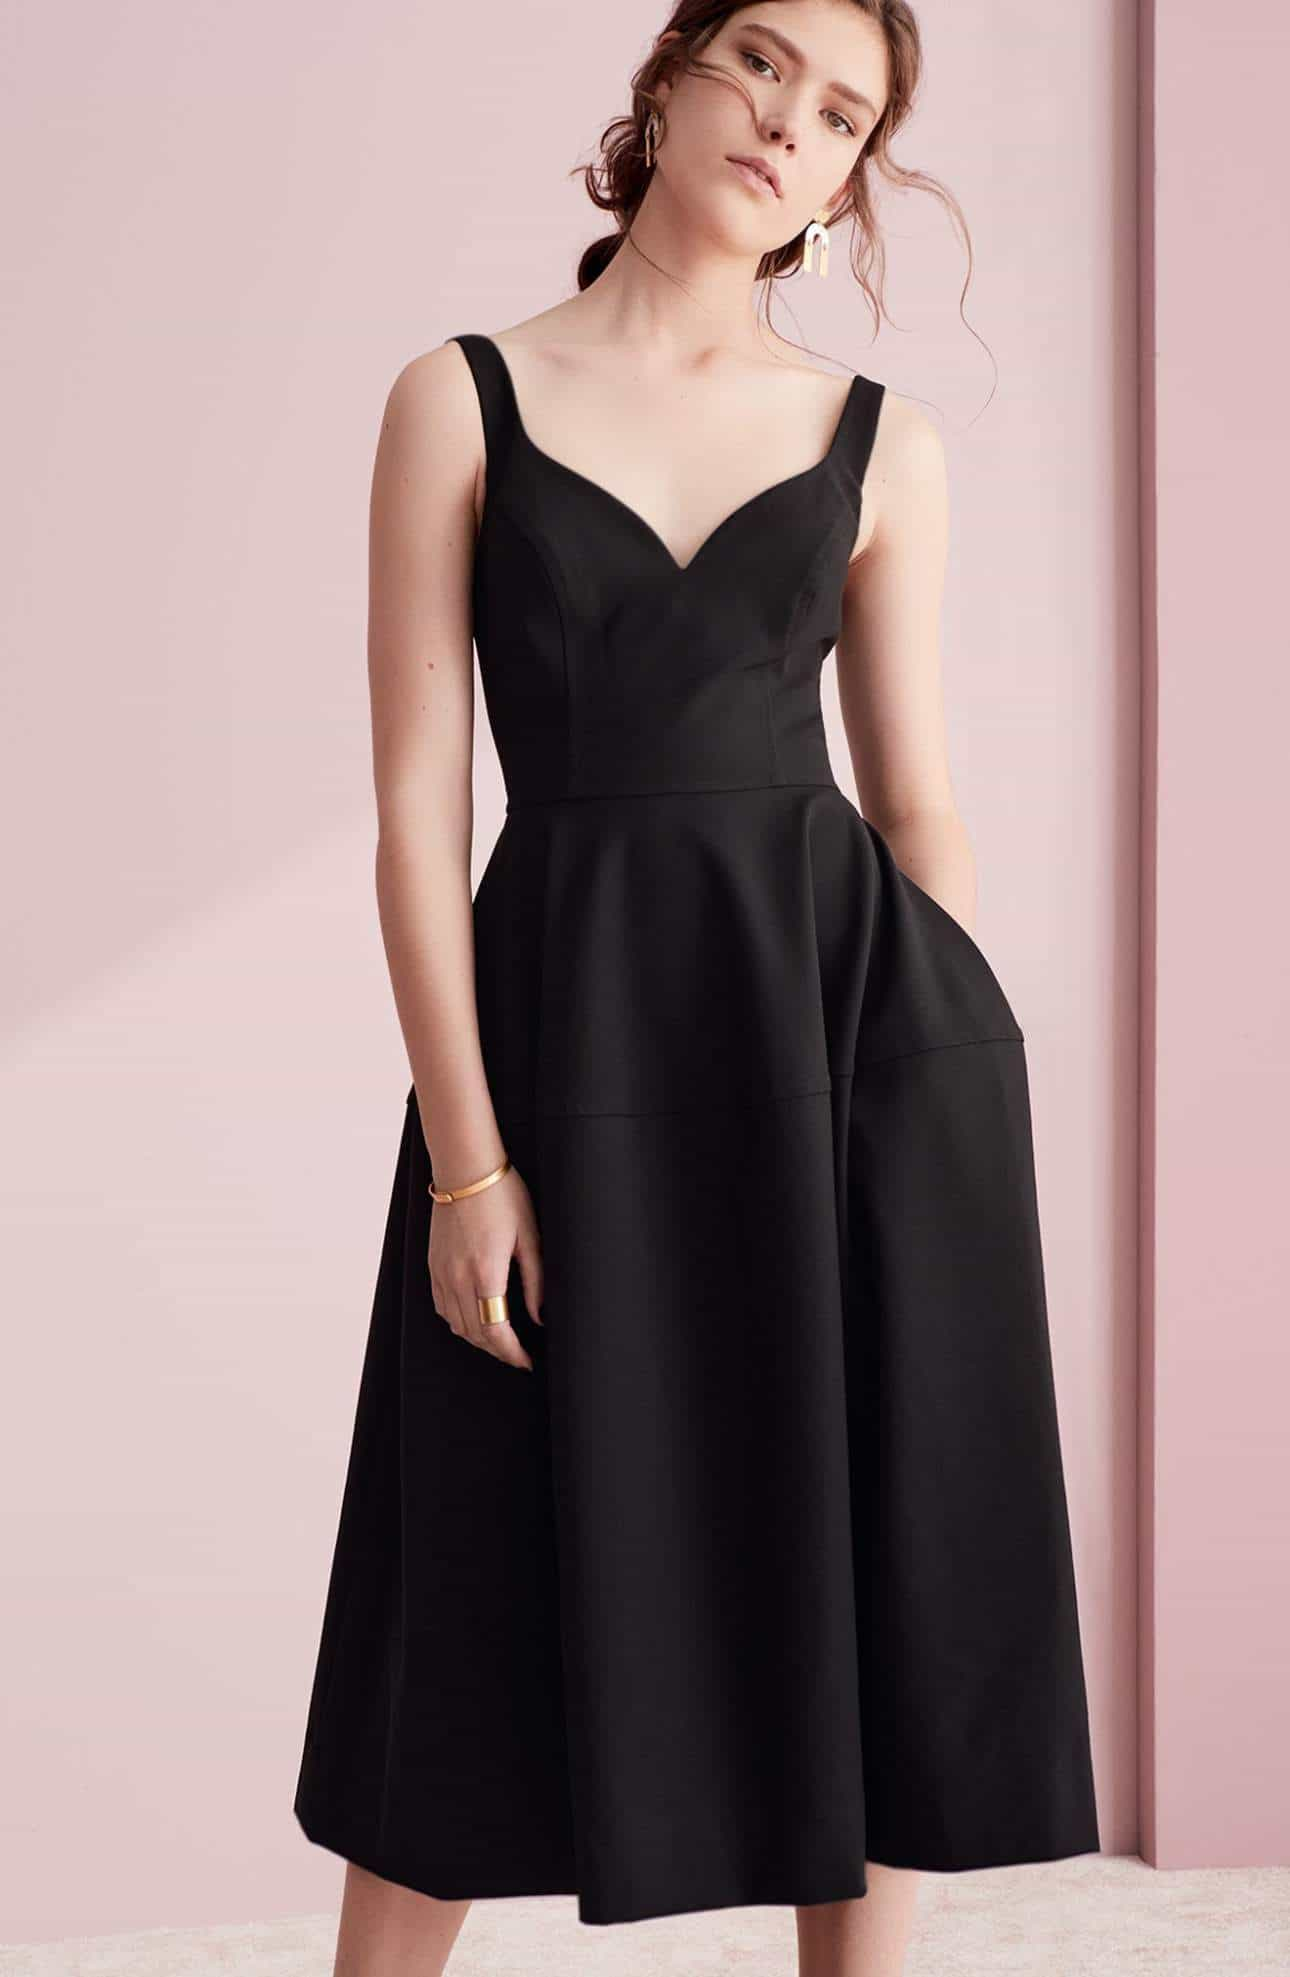 Black Dresses | Black Dresses for Wedding Guests